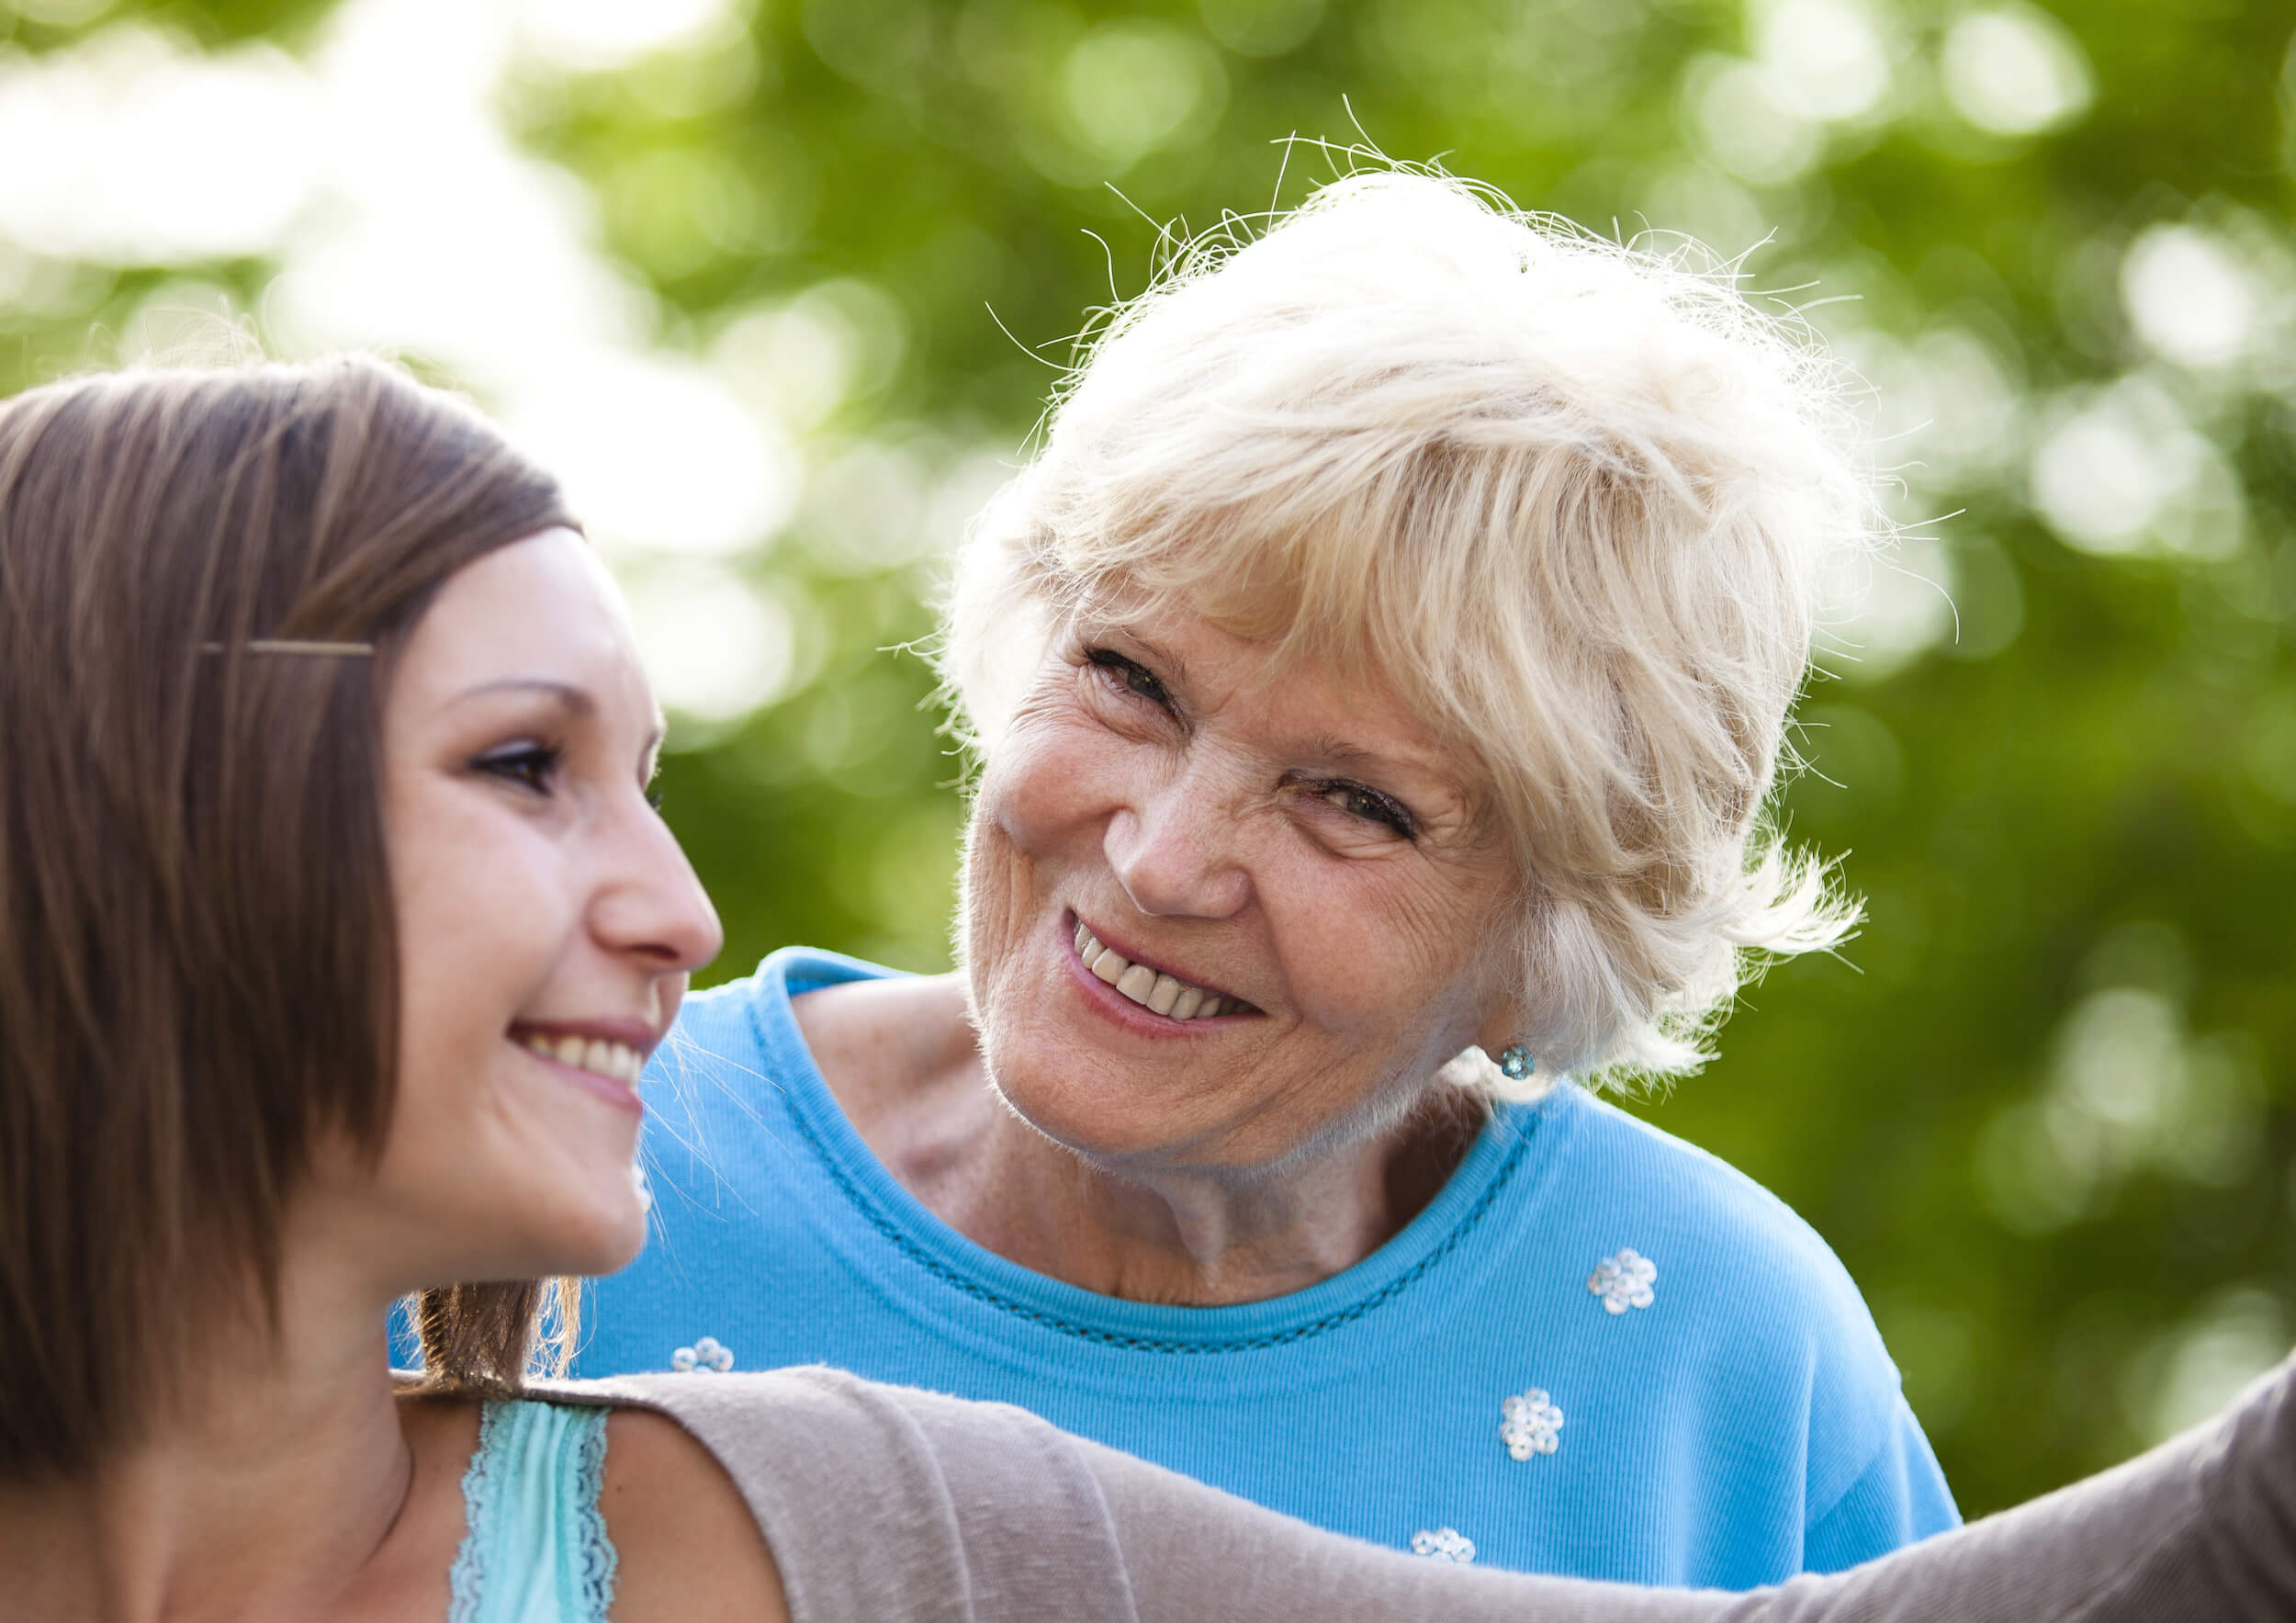 Tips for Caring for Loved Ones with Dementia